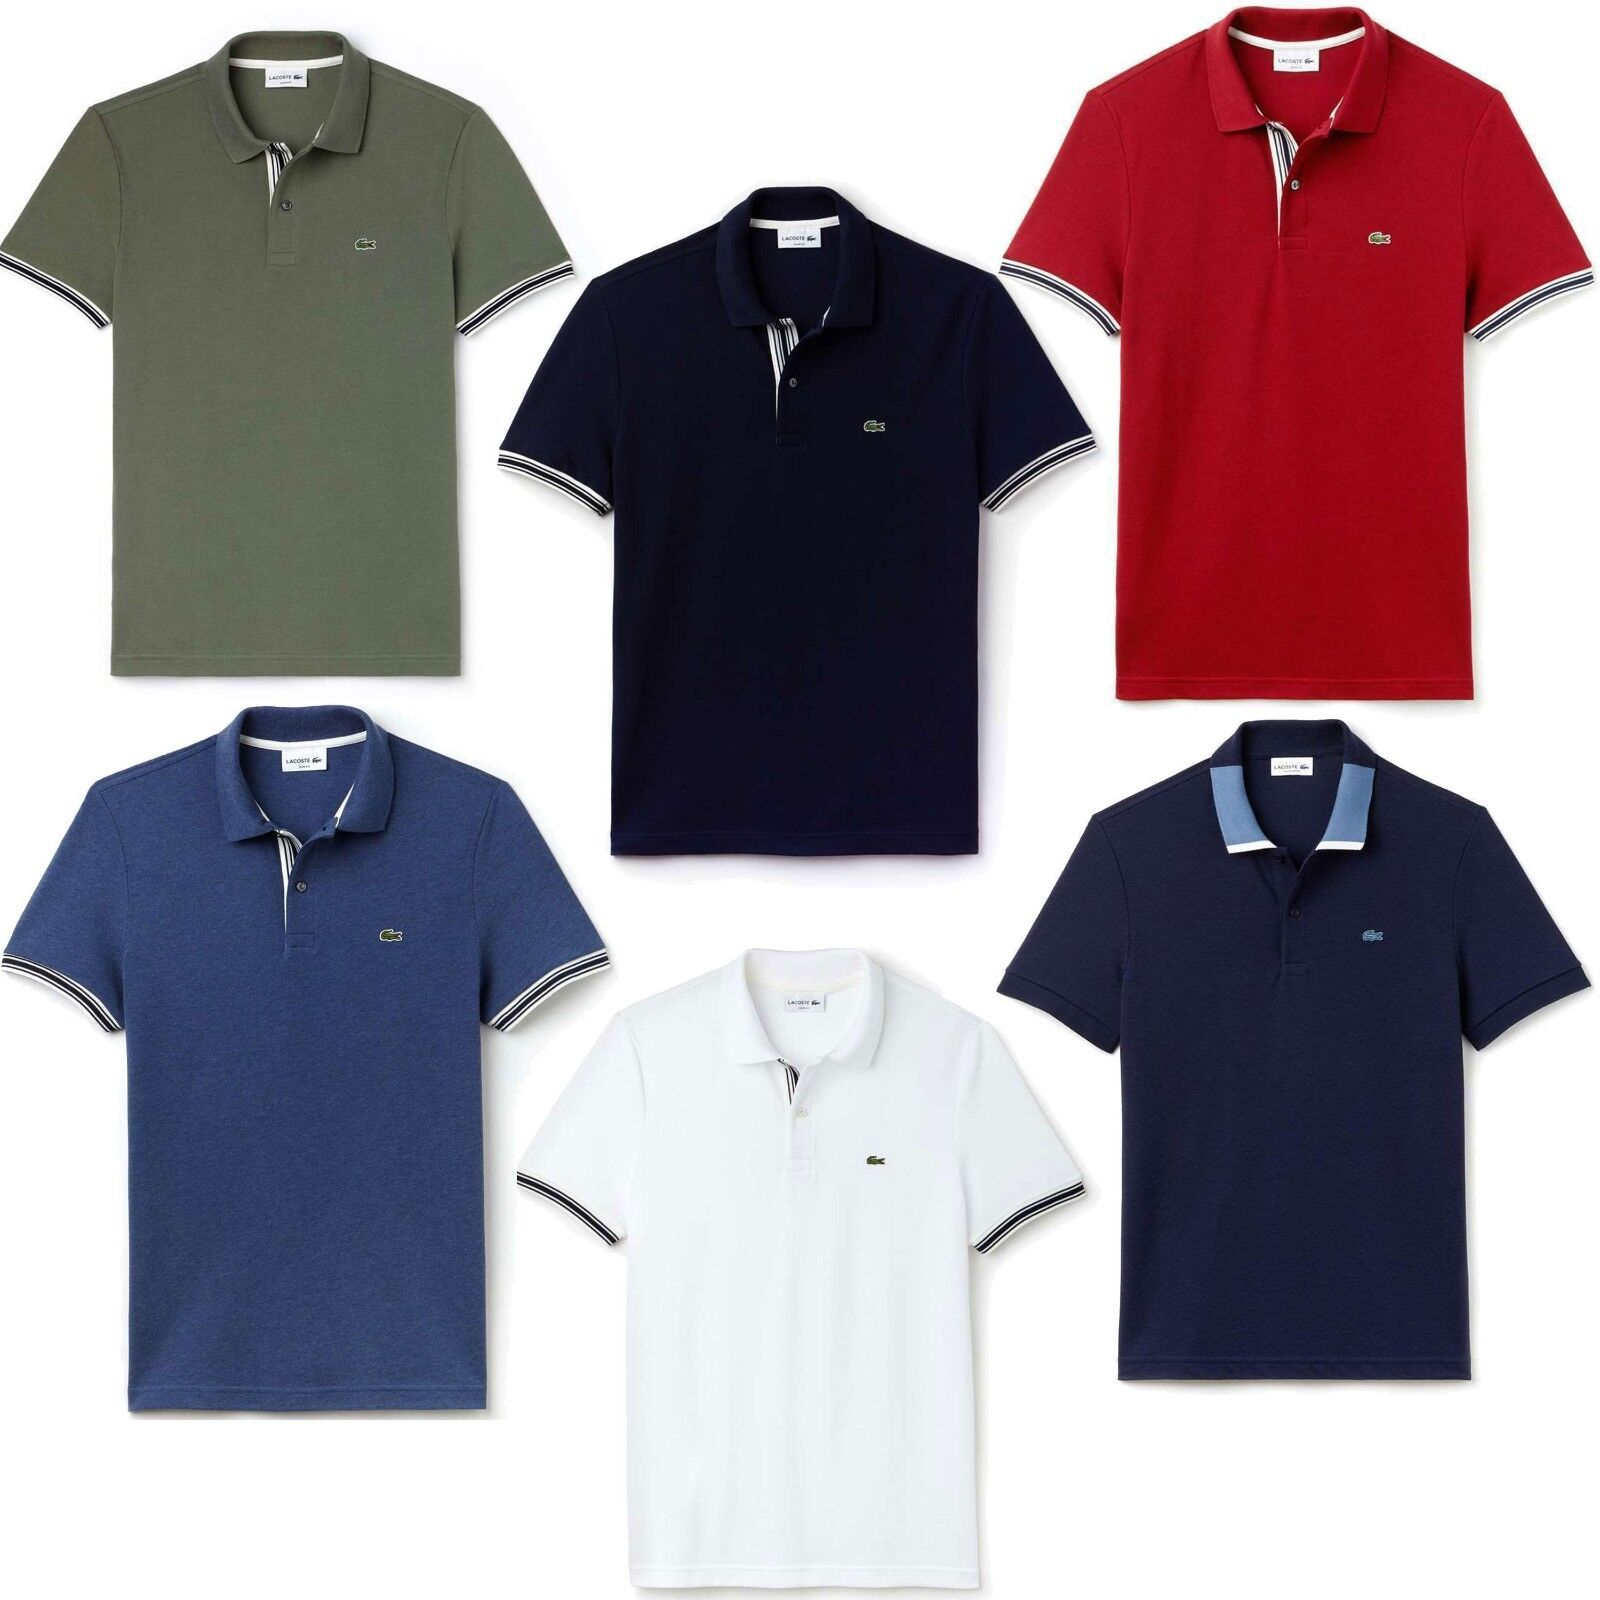 NEW Lacoste Men's 100% Cotton Semi Fancy Slim Fit Short Sleeve Polo T-Shirts